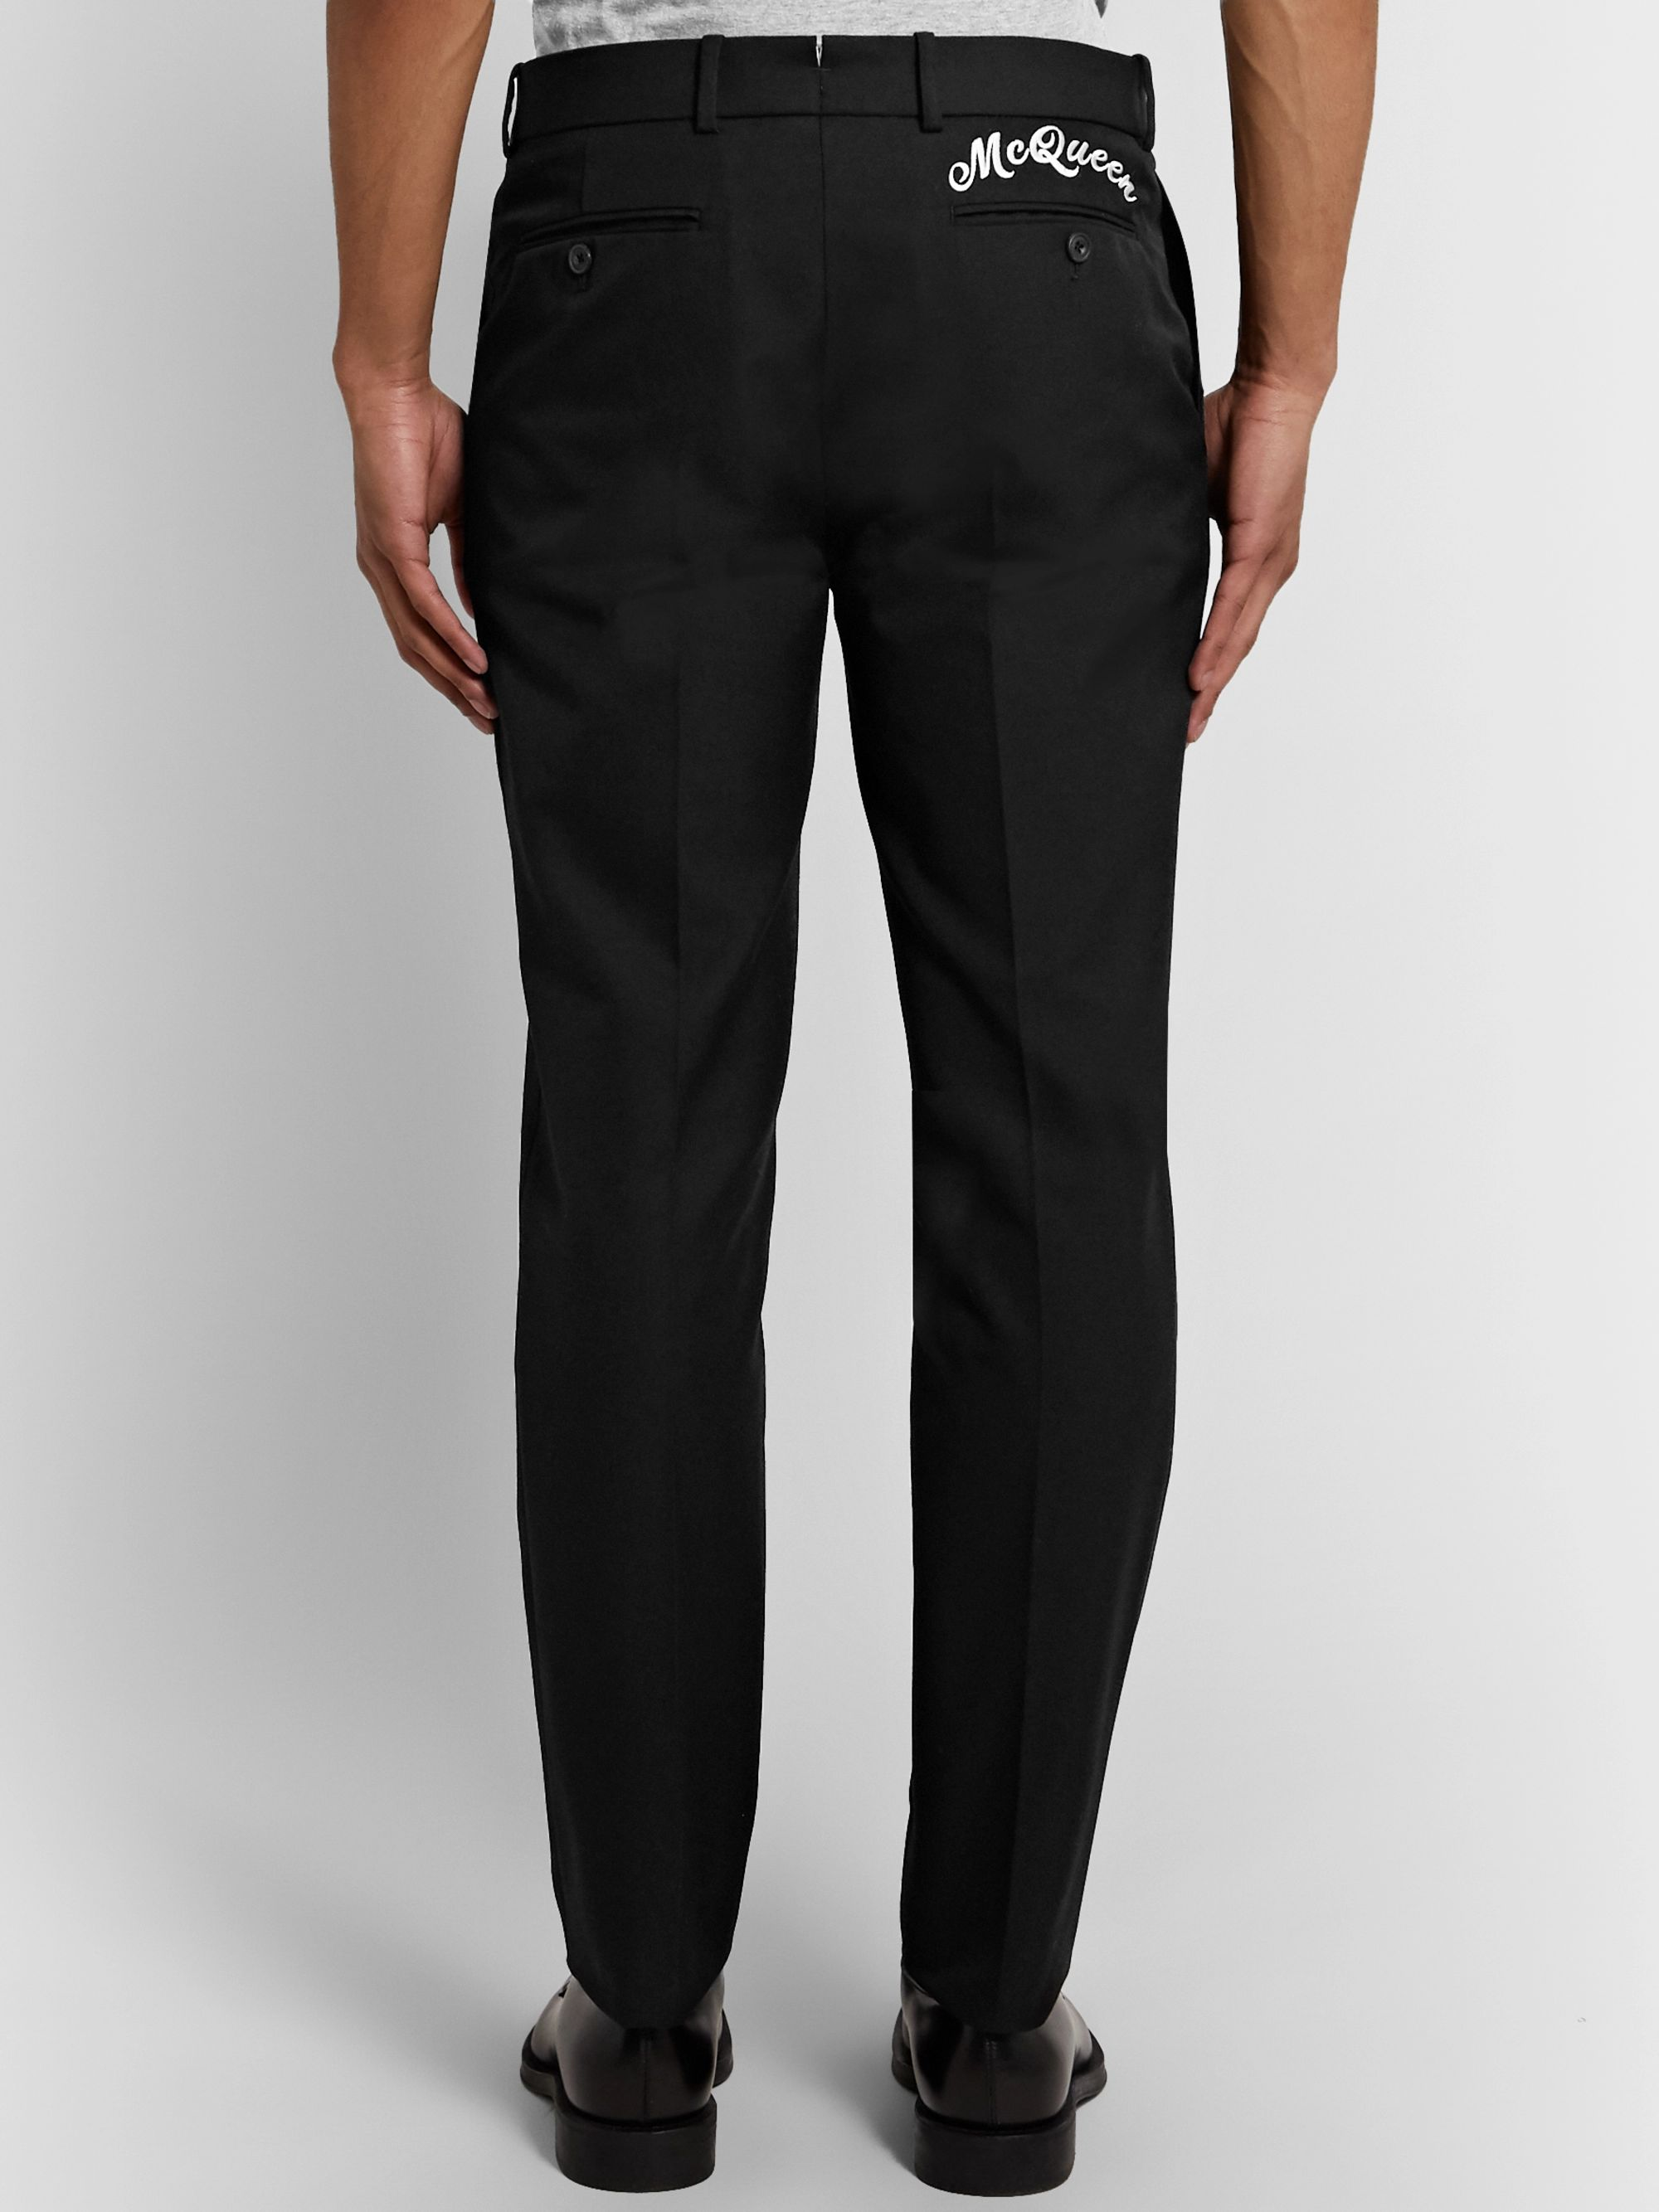 Alexander McQueen Slim-Fit Logo-Embroidered Panama Cotton Trousers